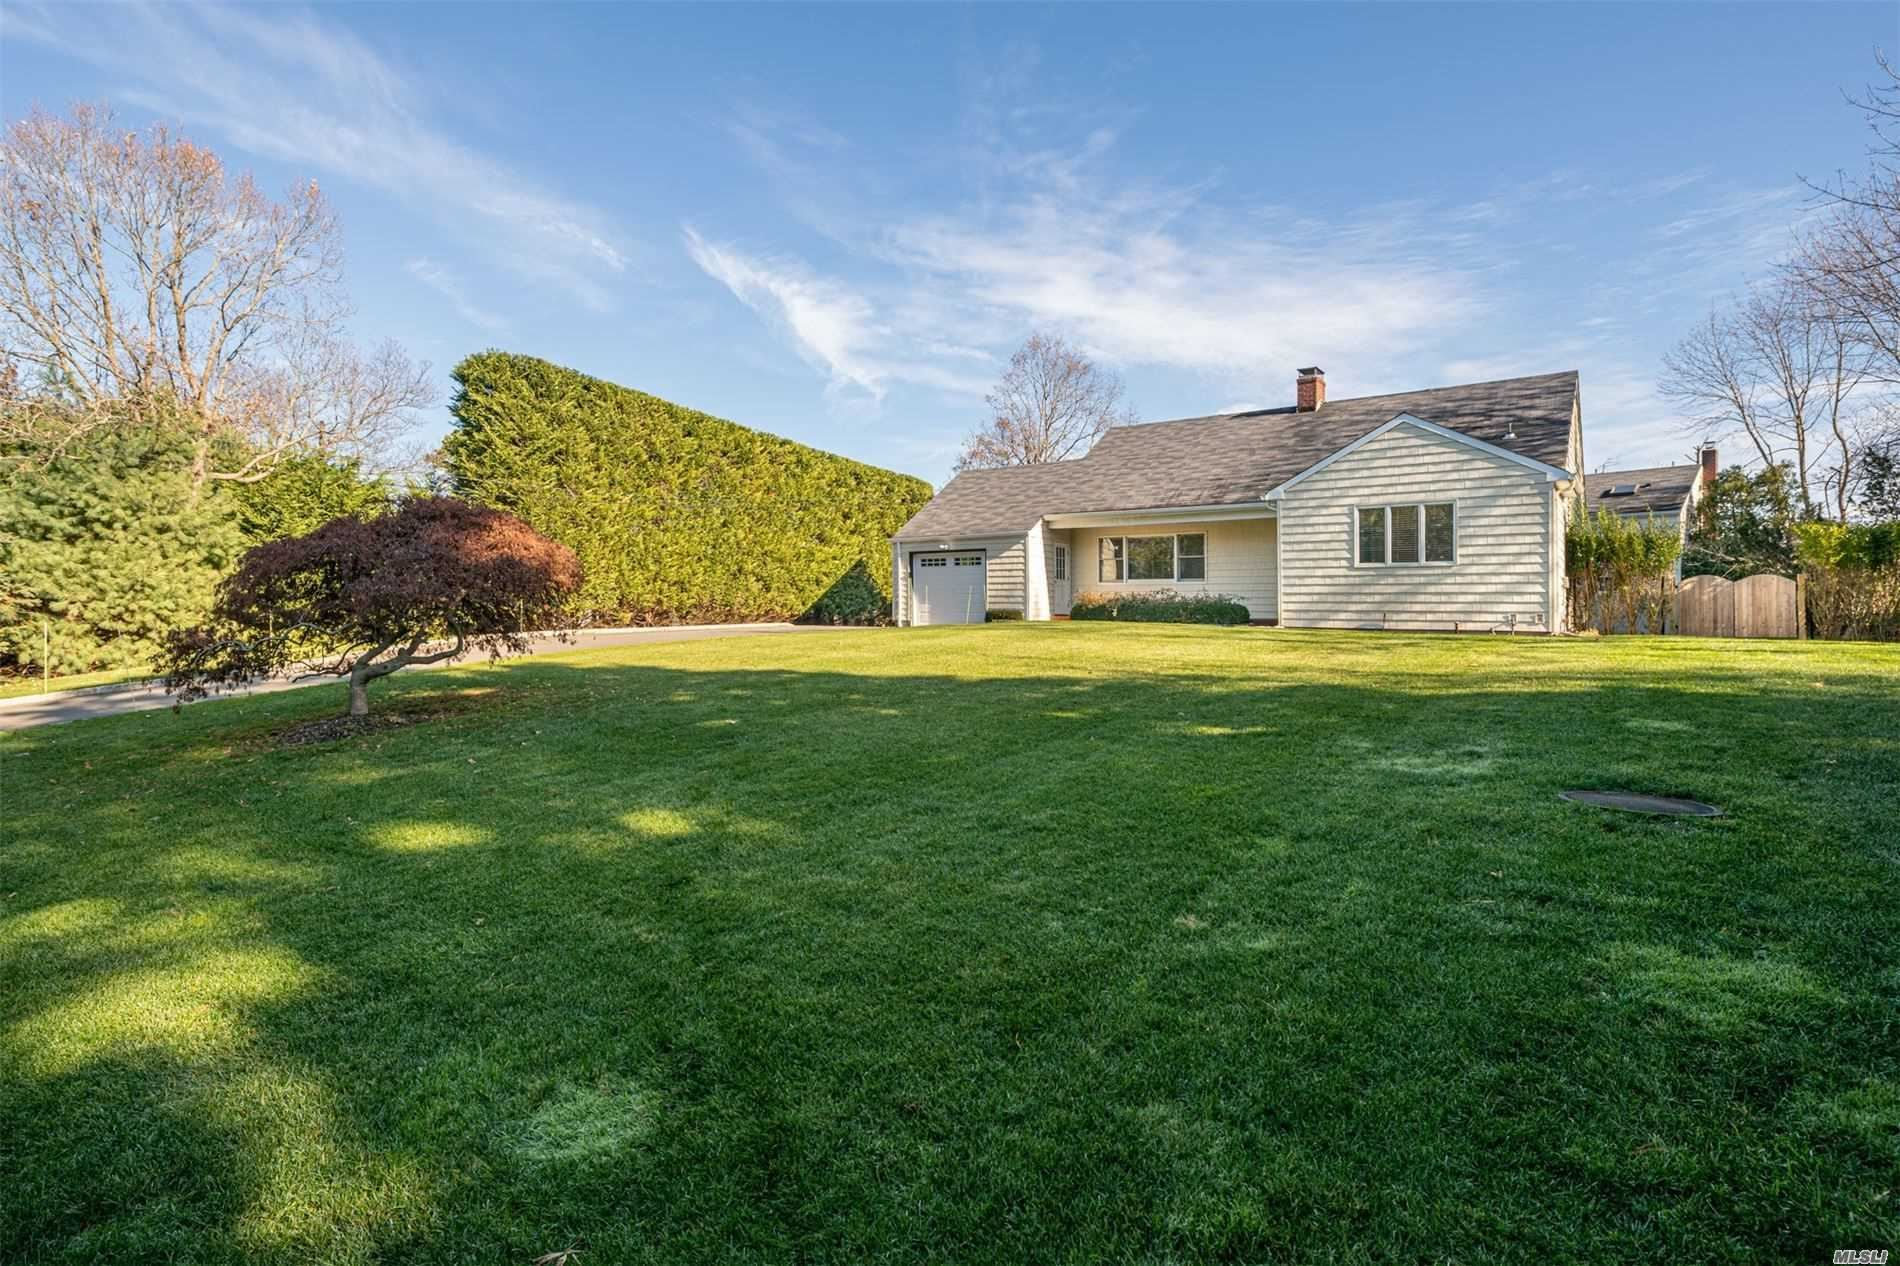 68 Hills Station Road, Southampton, NY 11968 - MLS#: 3185474